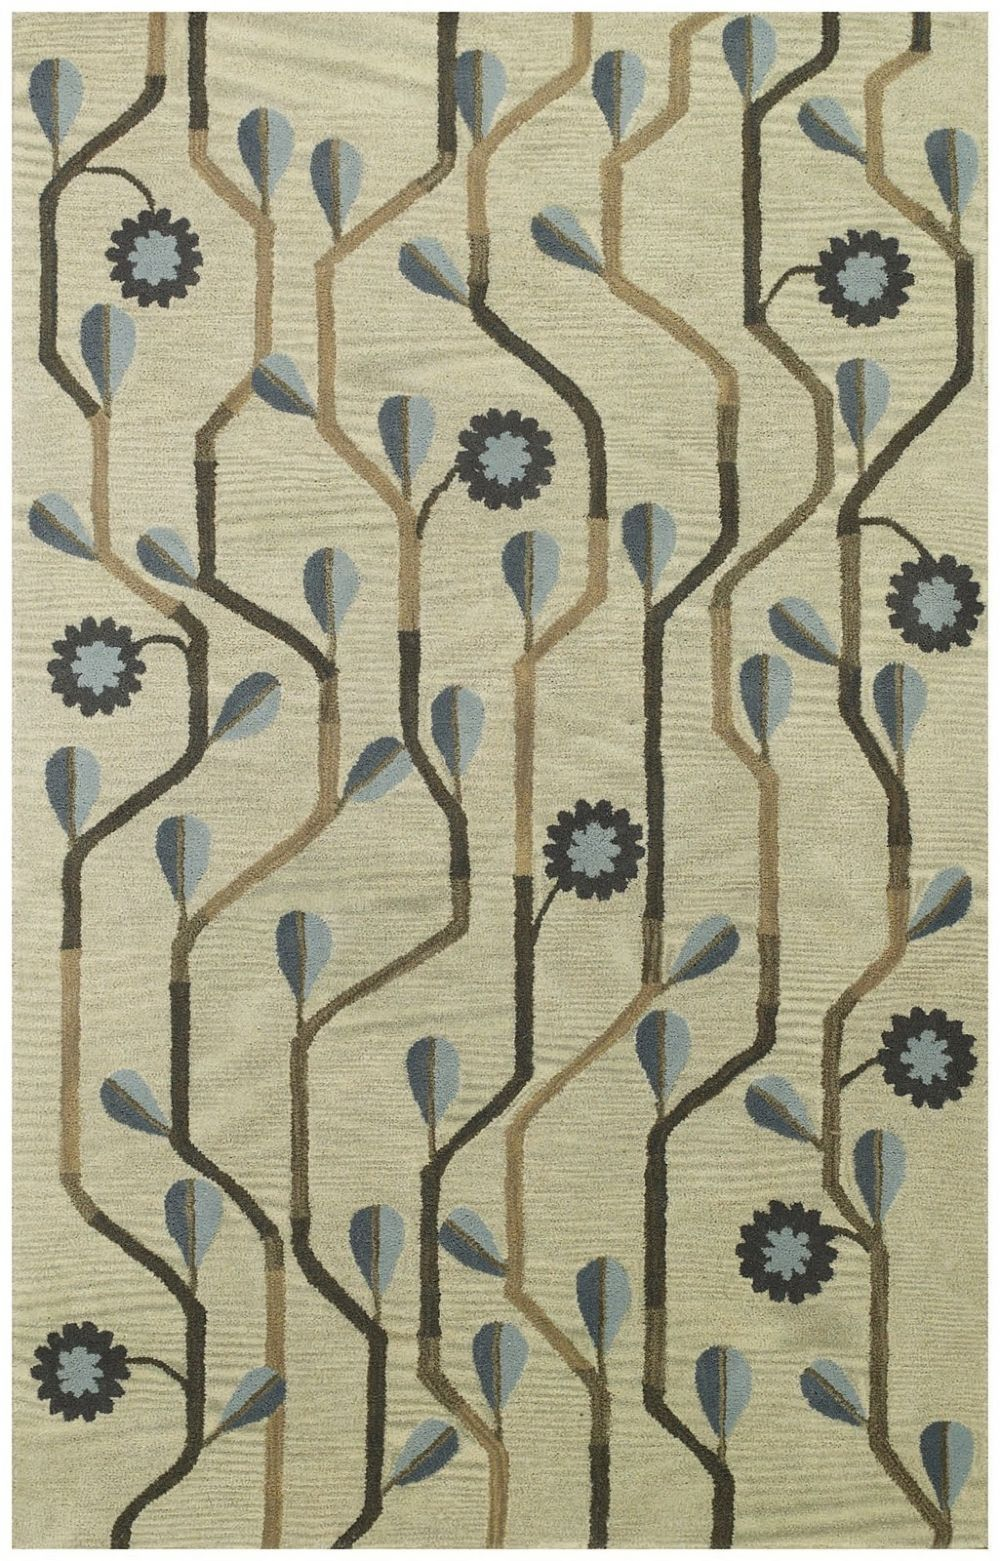 capel blue bell twining contemporary area rug collection